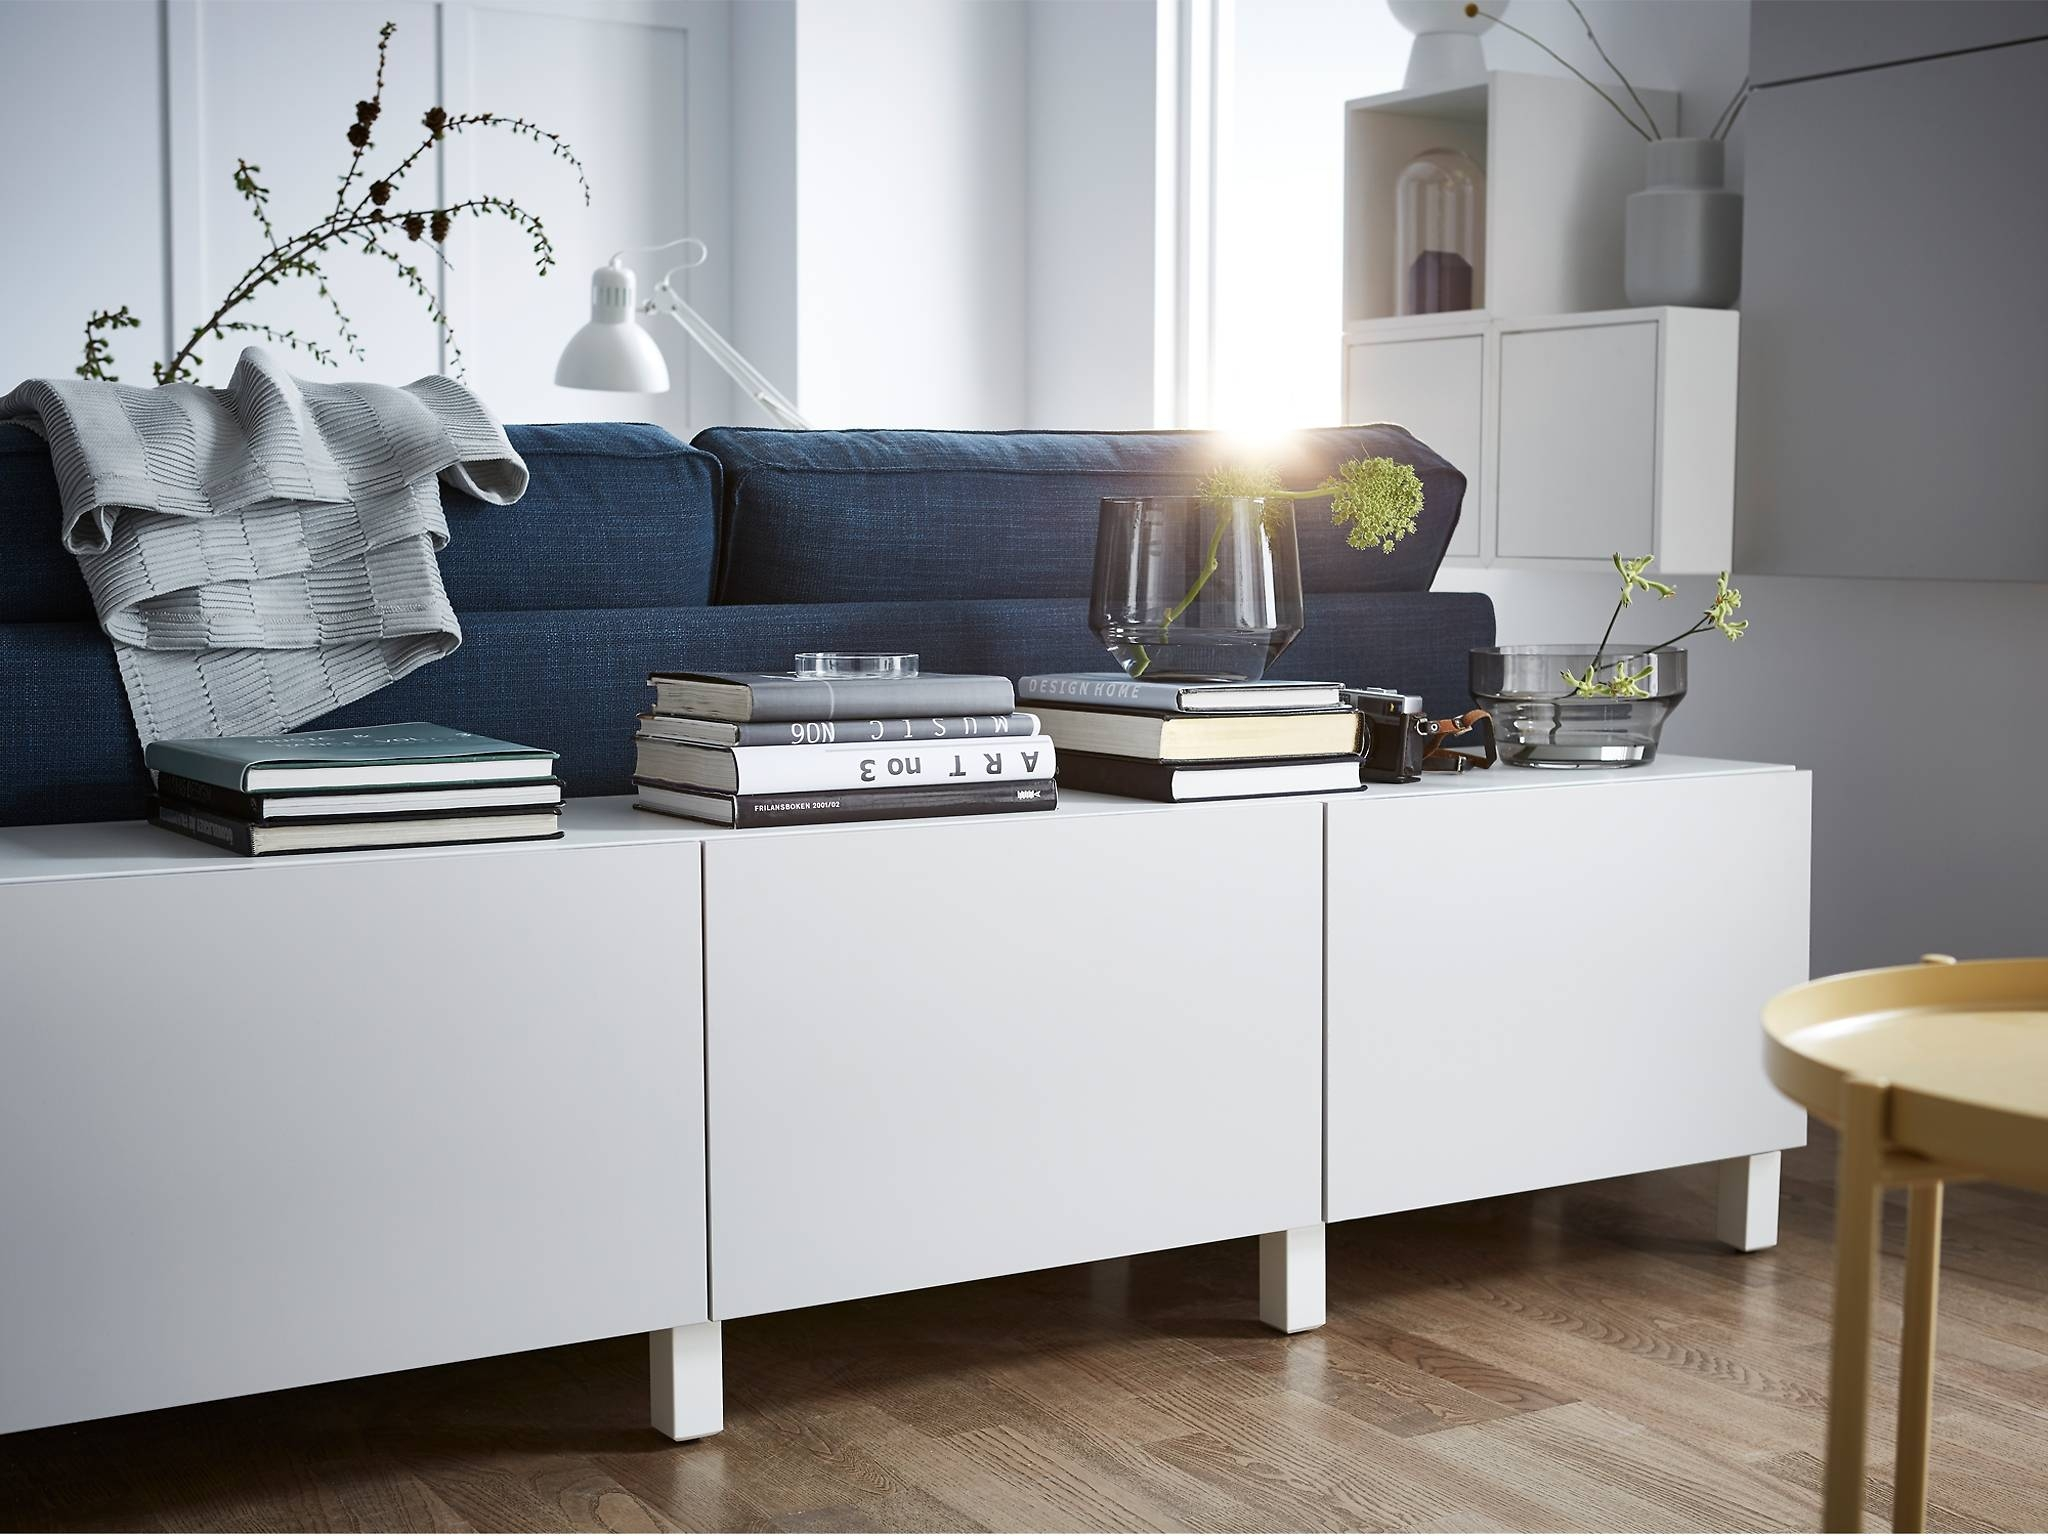 15 inspirations of ikea besta sideboards. Black Bedroom Furniture Sets. Home Design Ideas